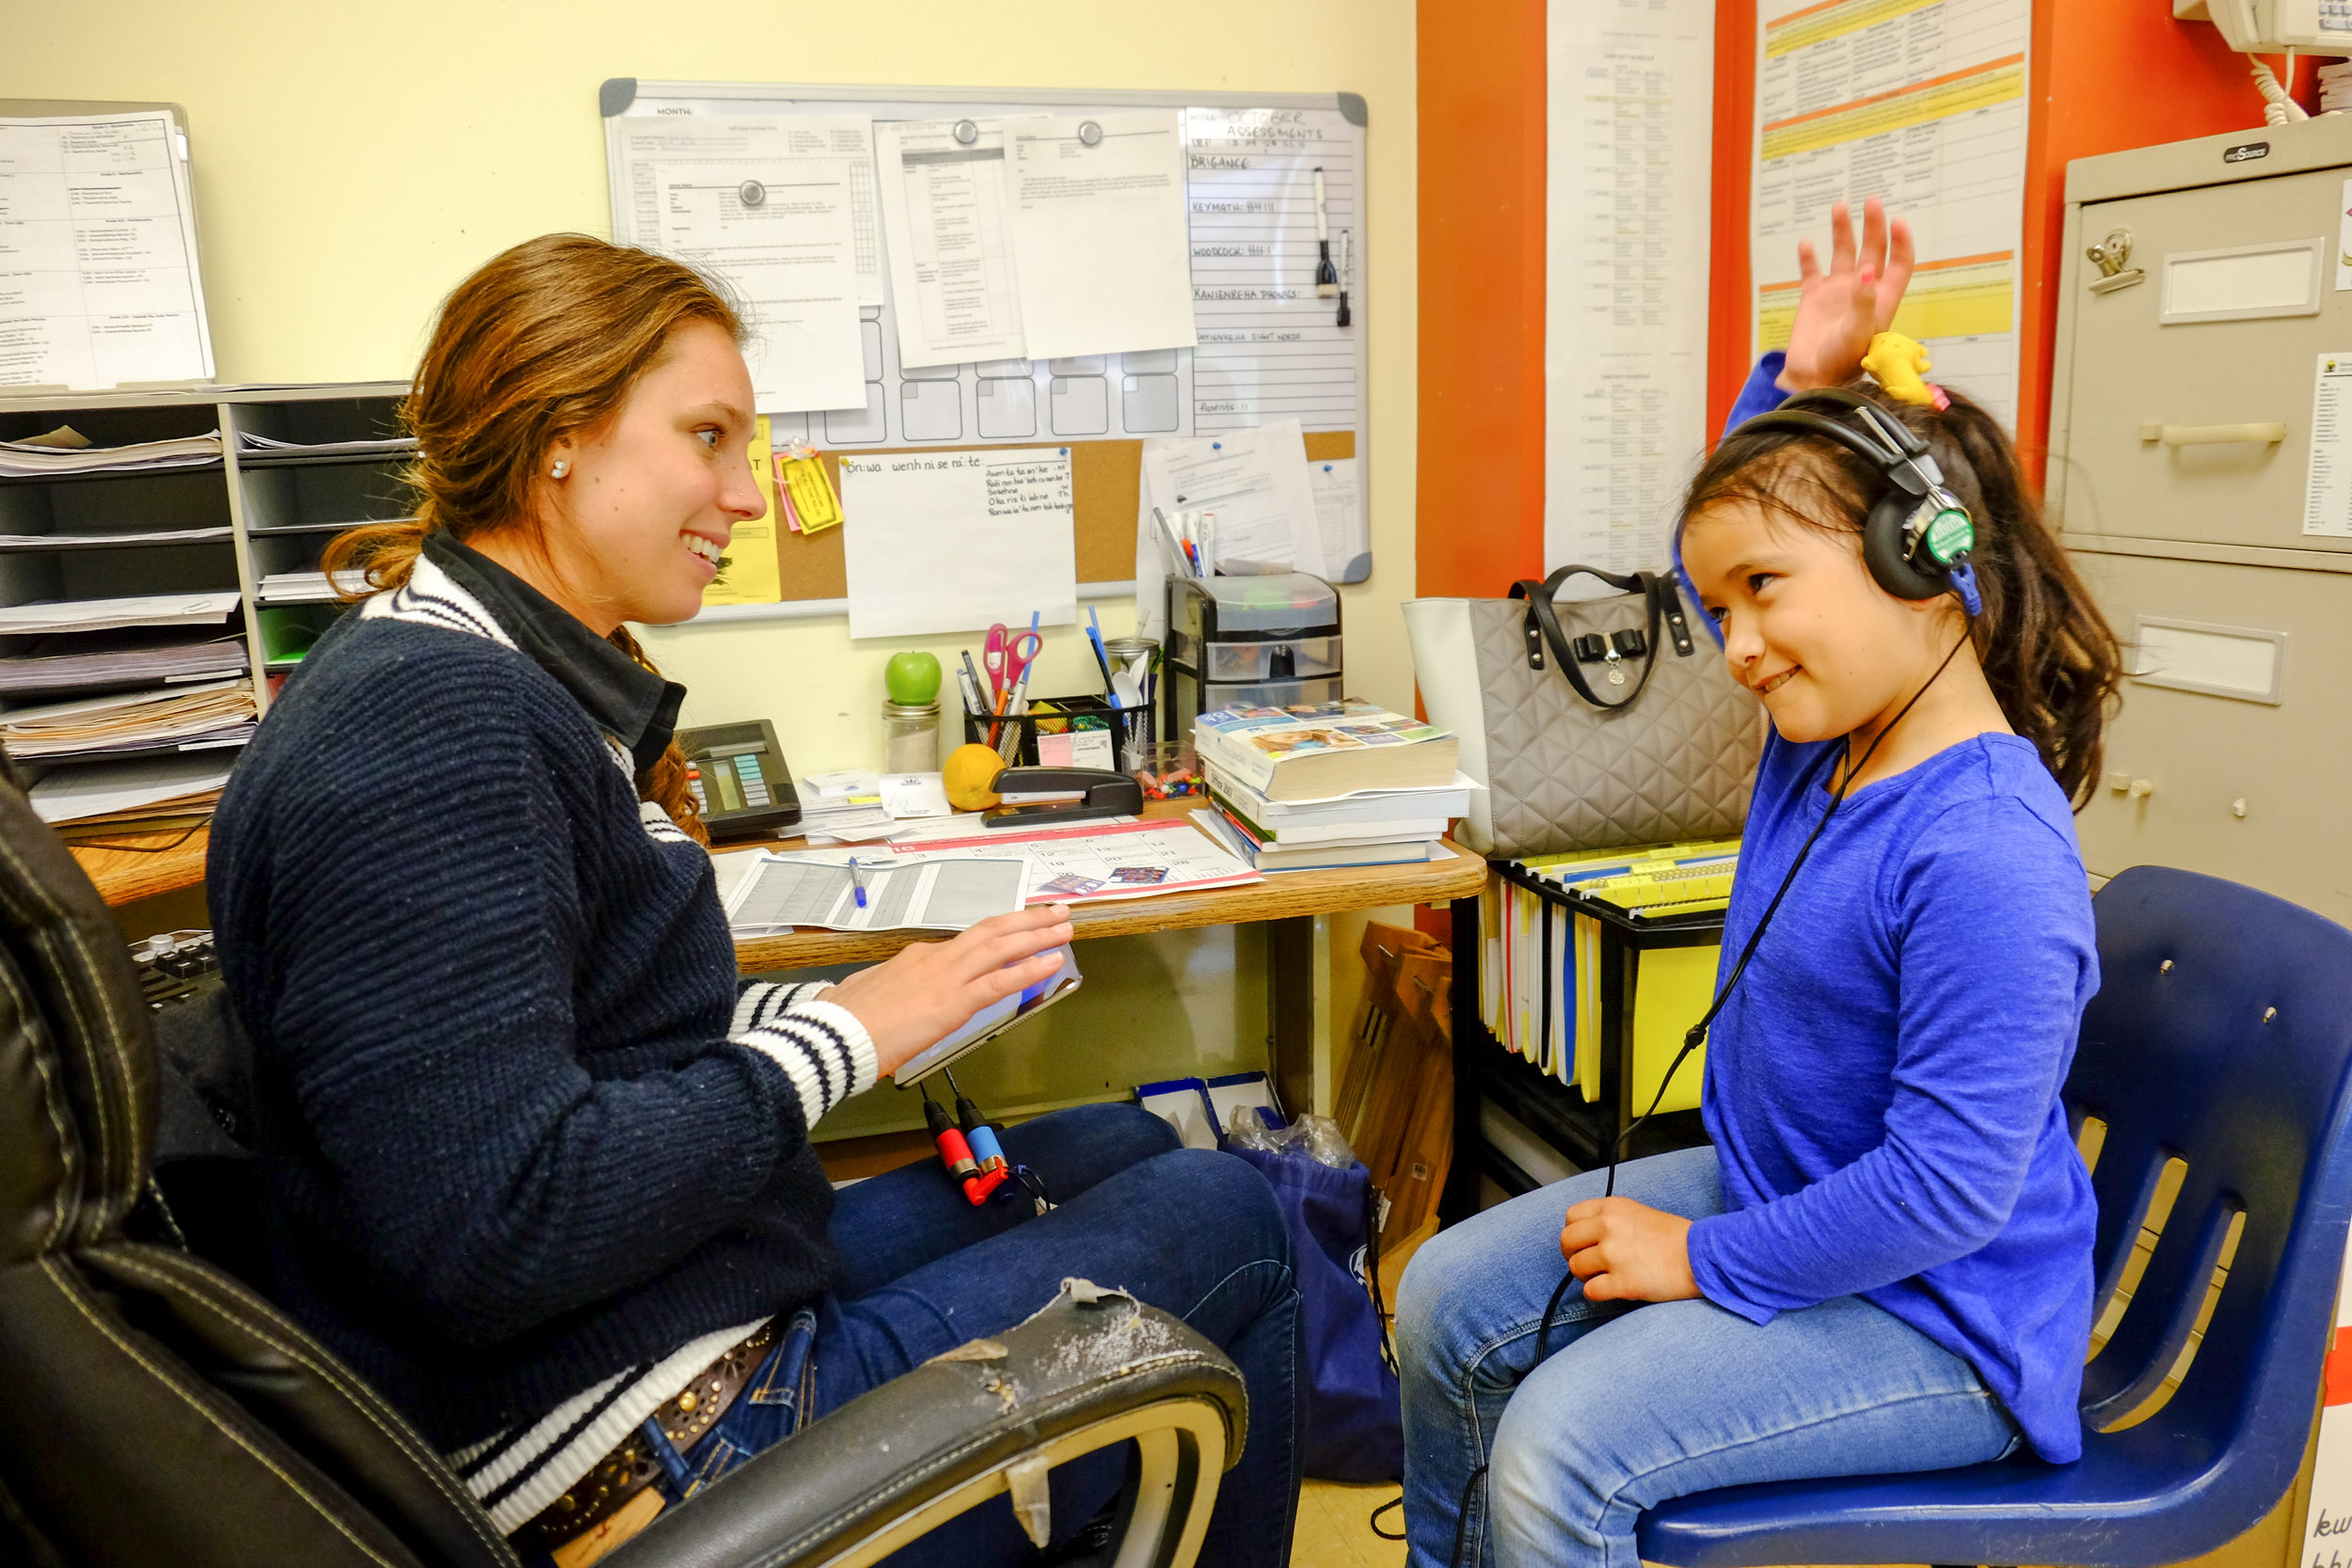 Get Involved - Become an ambassador for better hearing